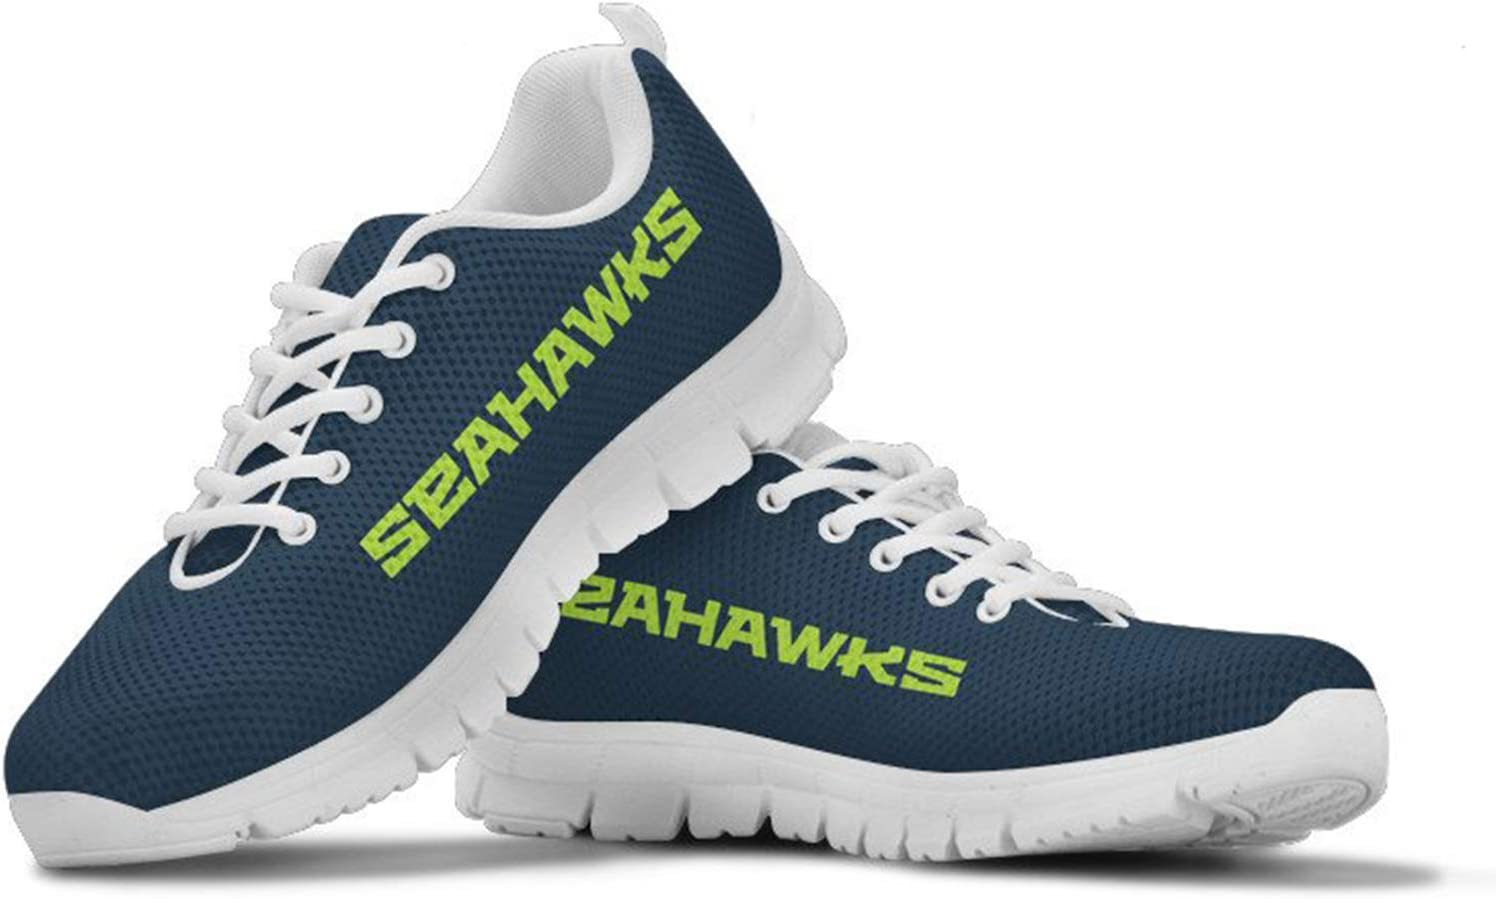 Seattle Seahawks Themed Casual Athletic